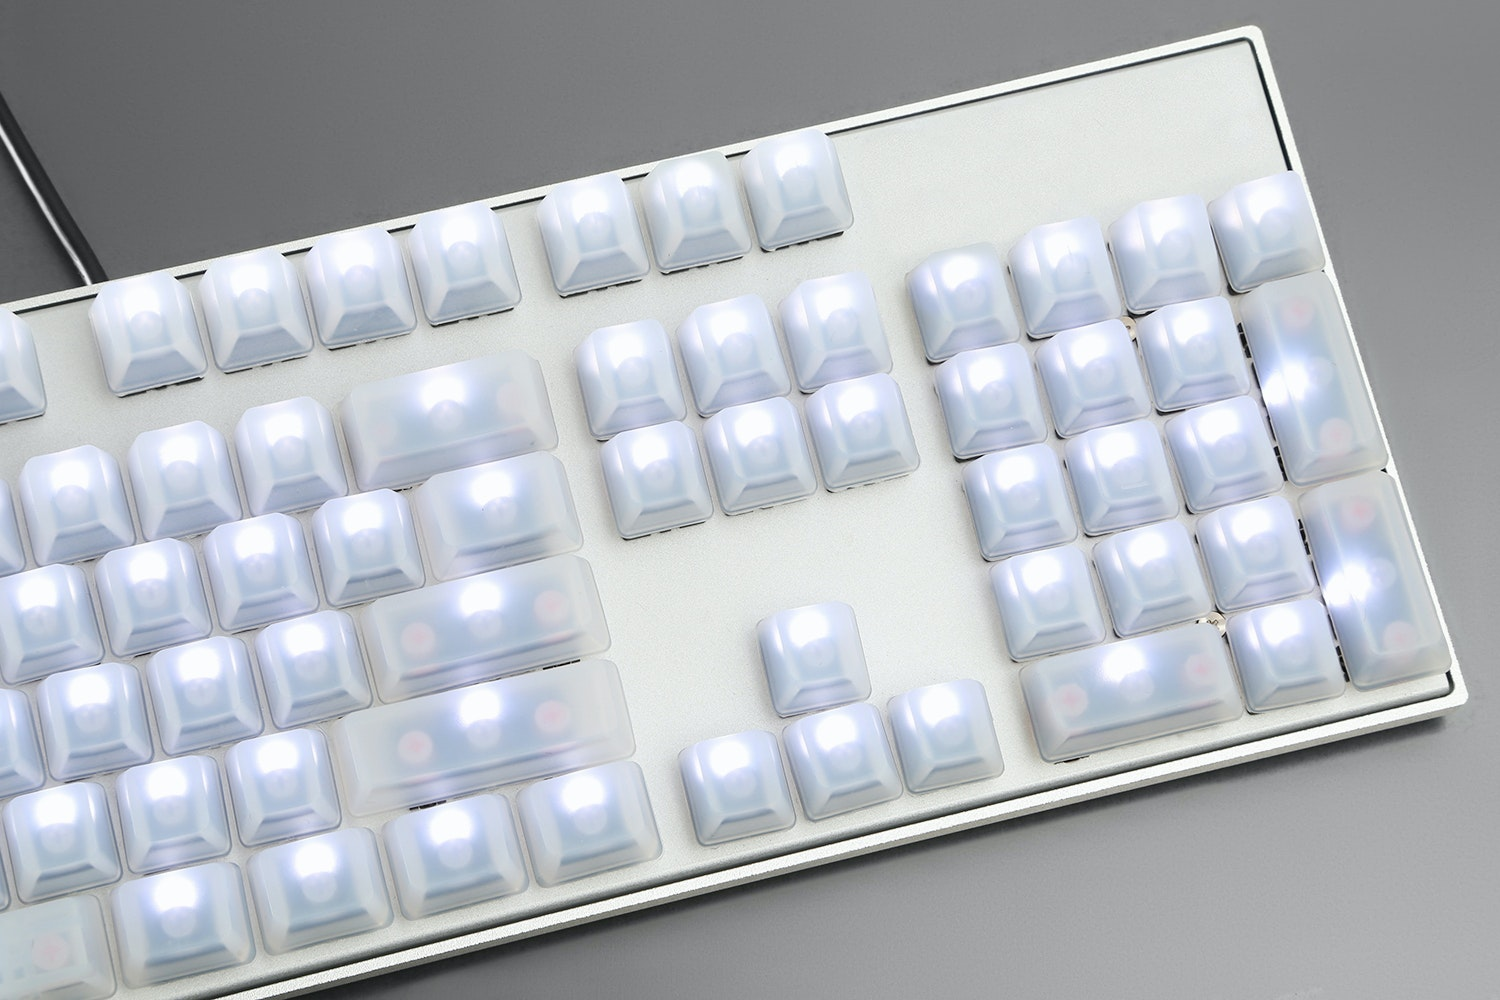 Silicone Gel Keycap Set